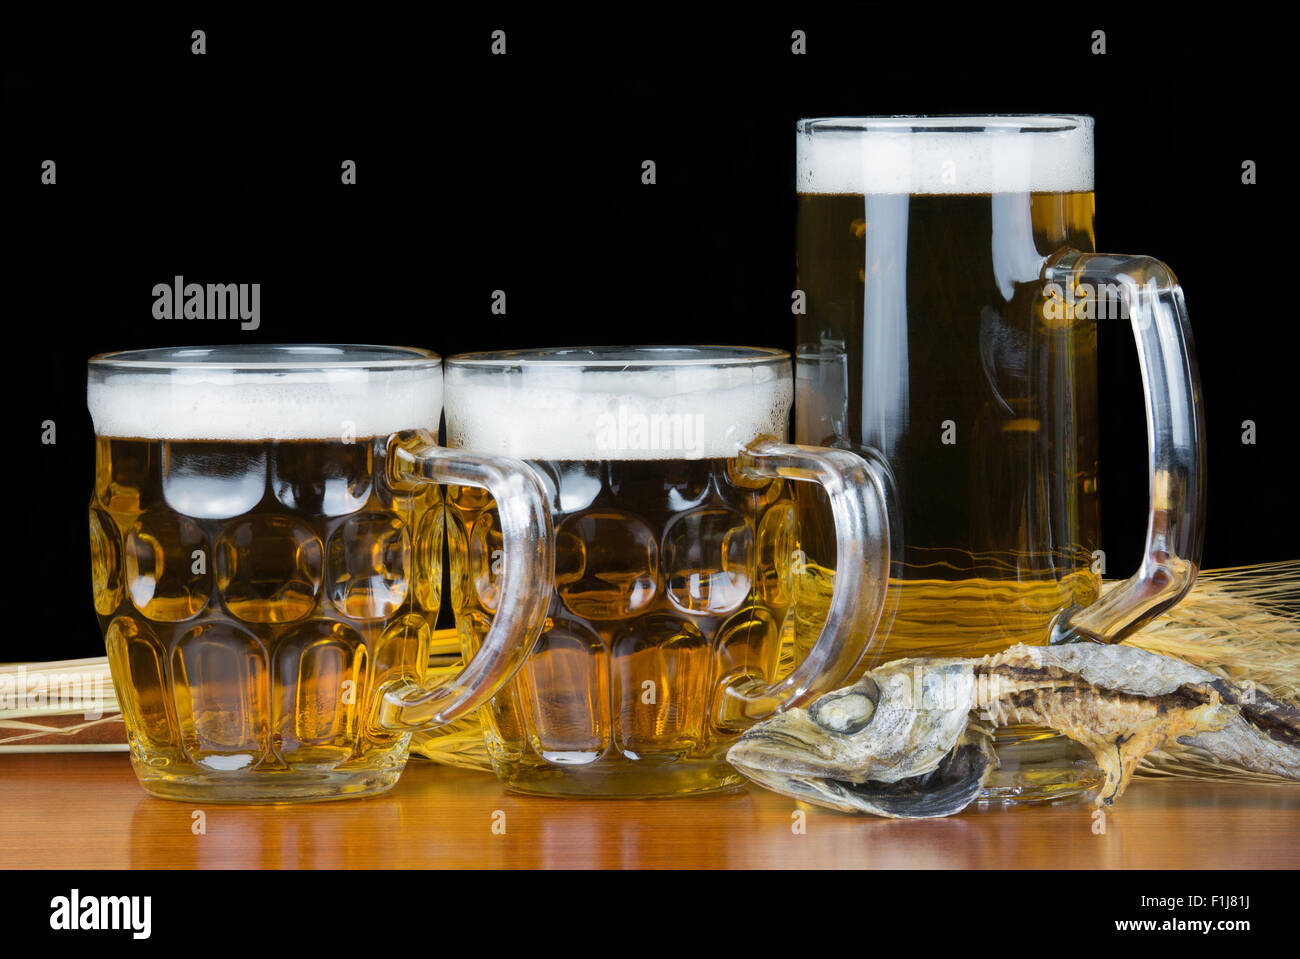 Pint of beer and mackerel with wheat on black background. - Stock Image